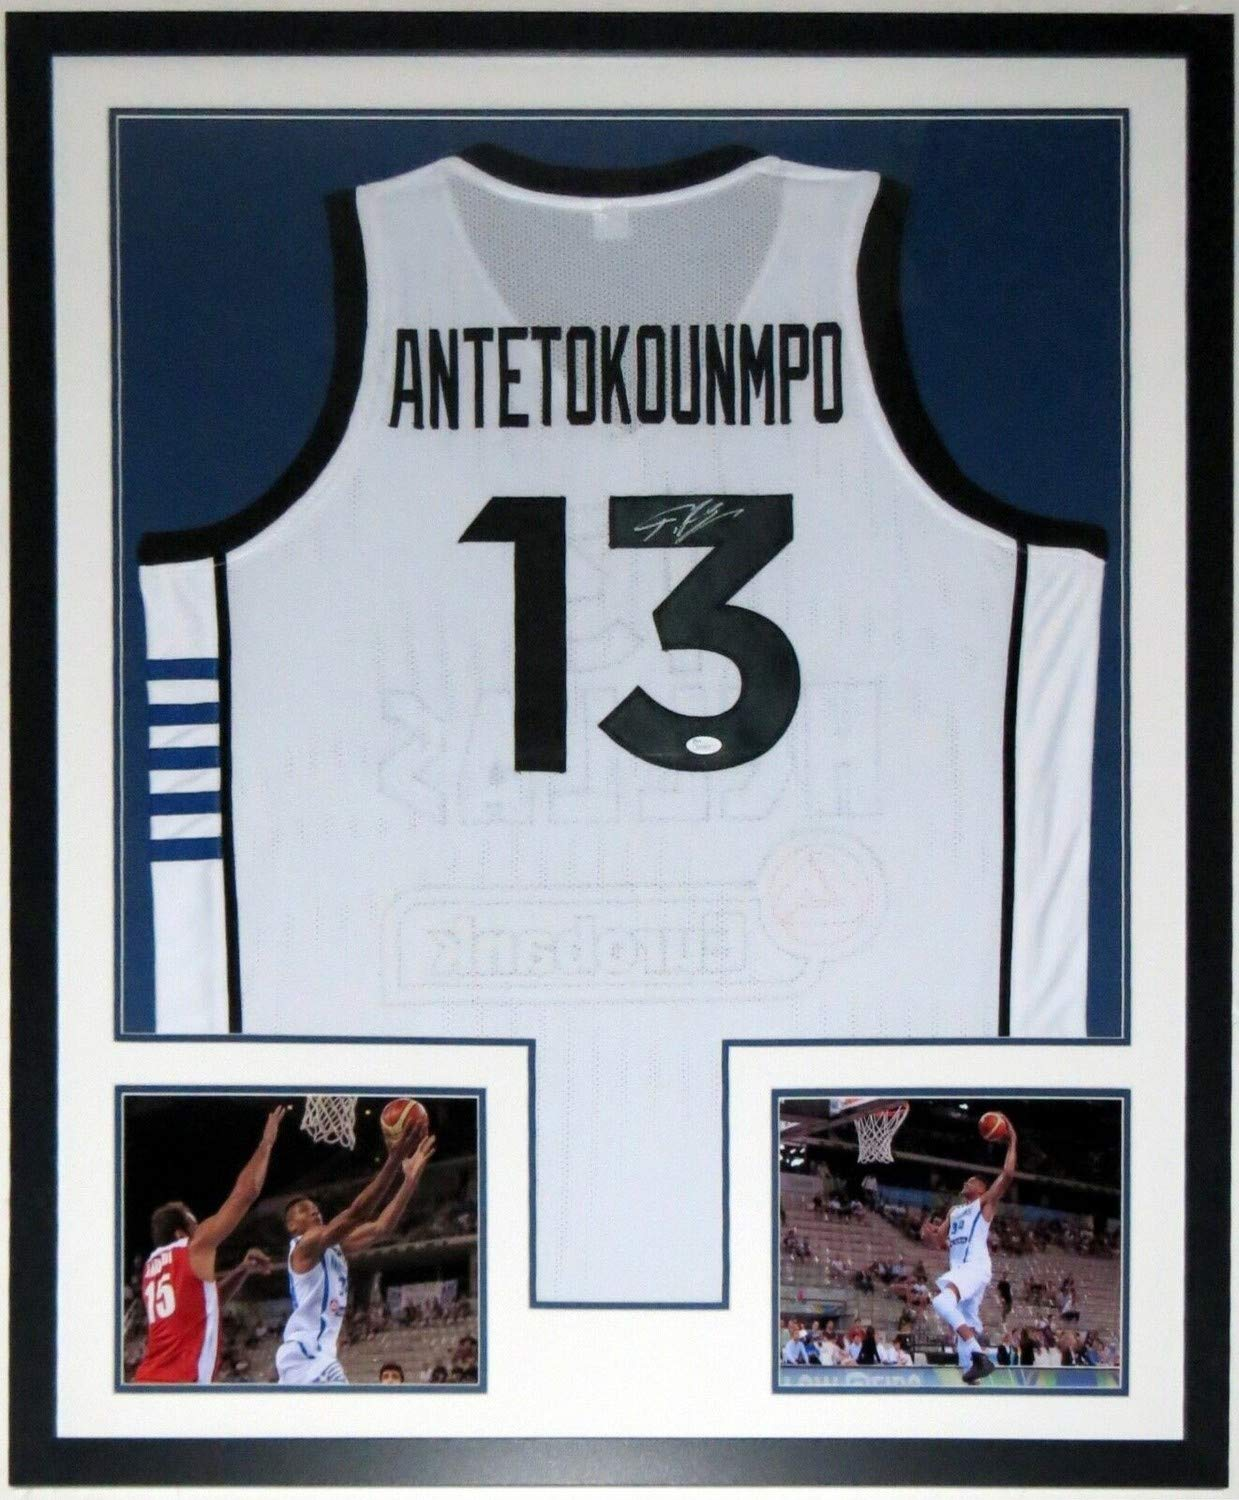 b909e4a9c6d Giannis Antetokounmpo Autographed Signed Memorabilia Greece Jersey JSA Coa  Custom Framed Photo at Amazon s Sports Collectibles Store